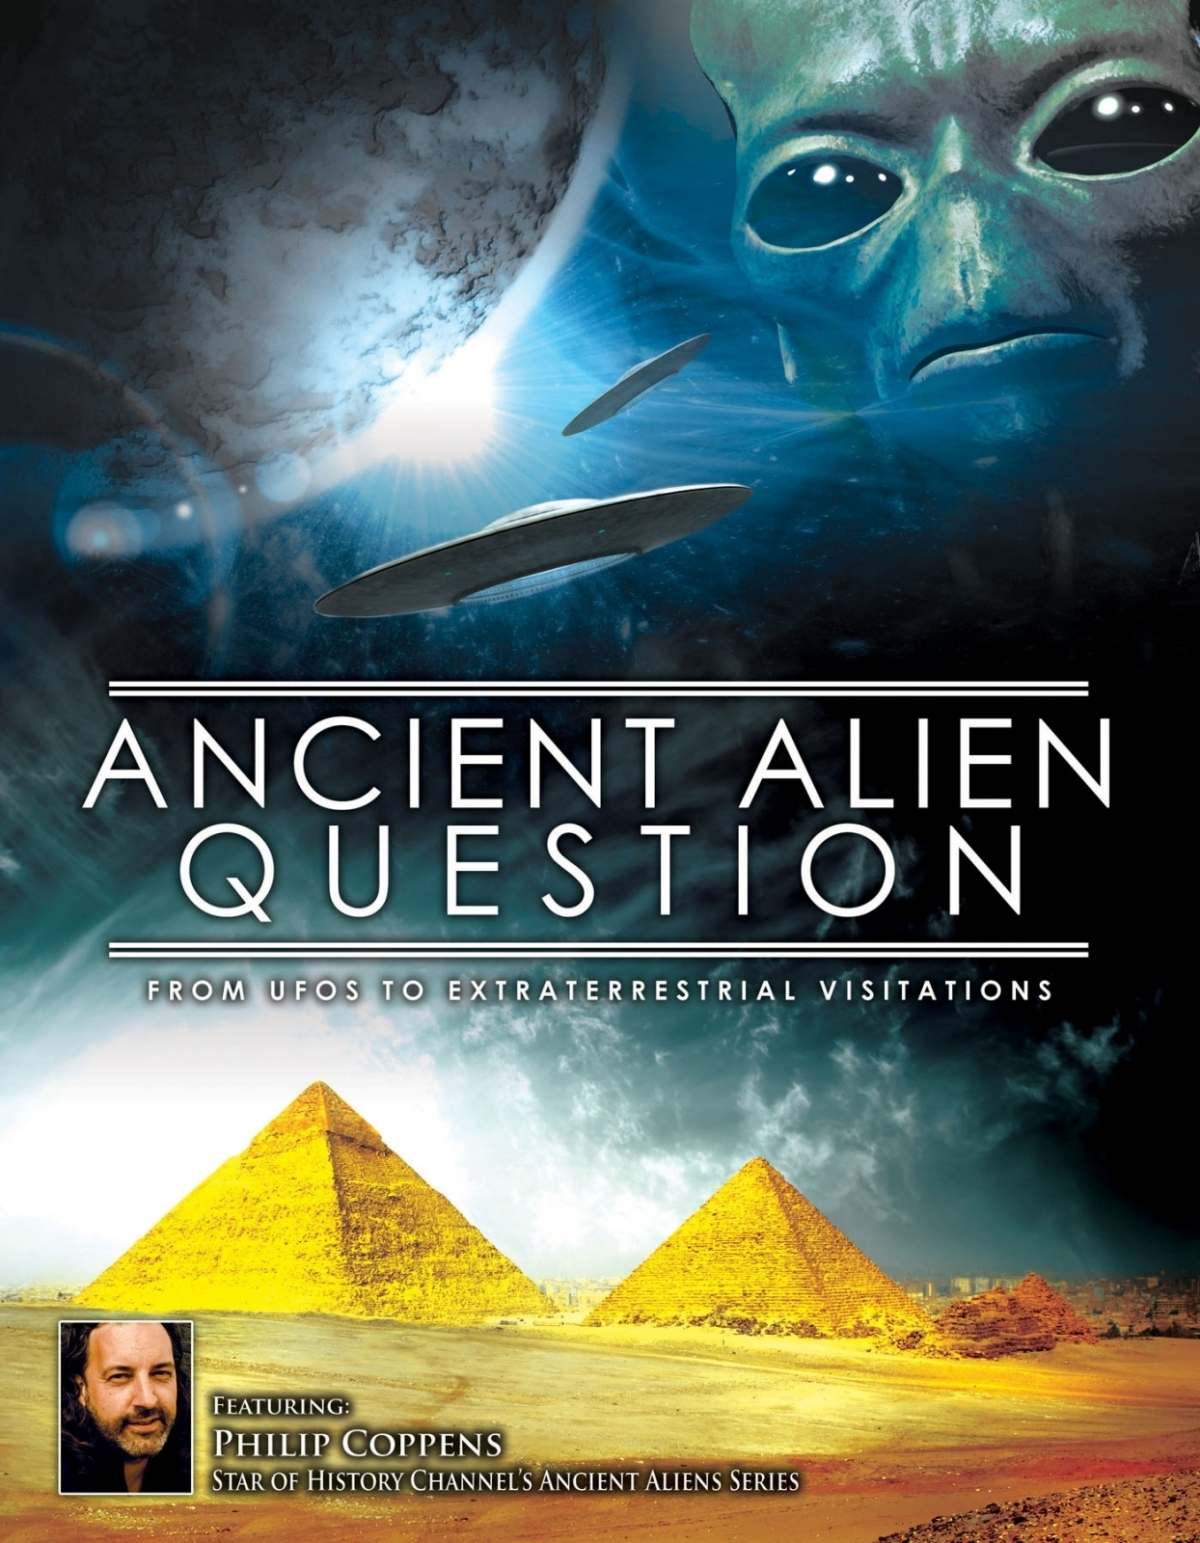 Ancient Alien Question: From UFOs to Extraterrestrial Visitations hd on soap2day